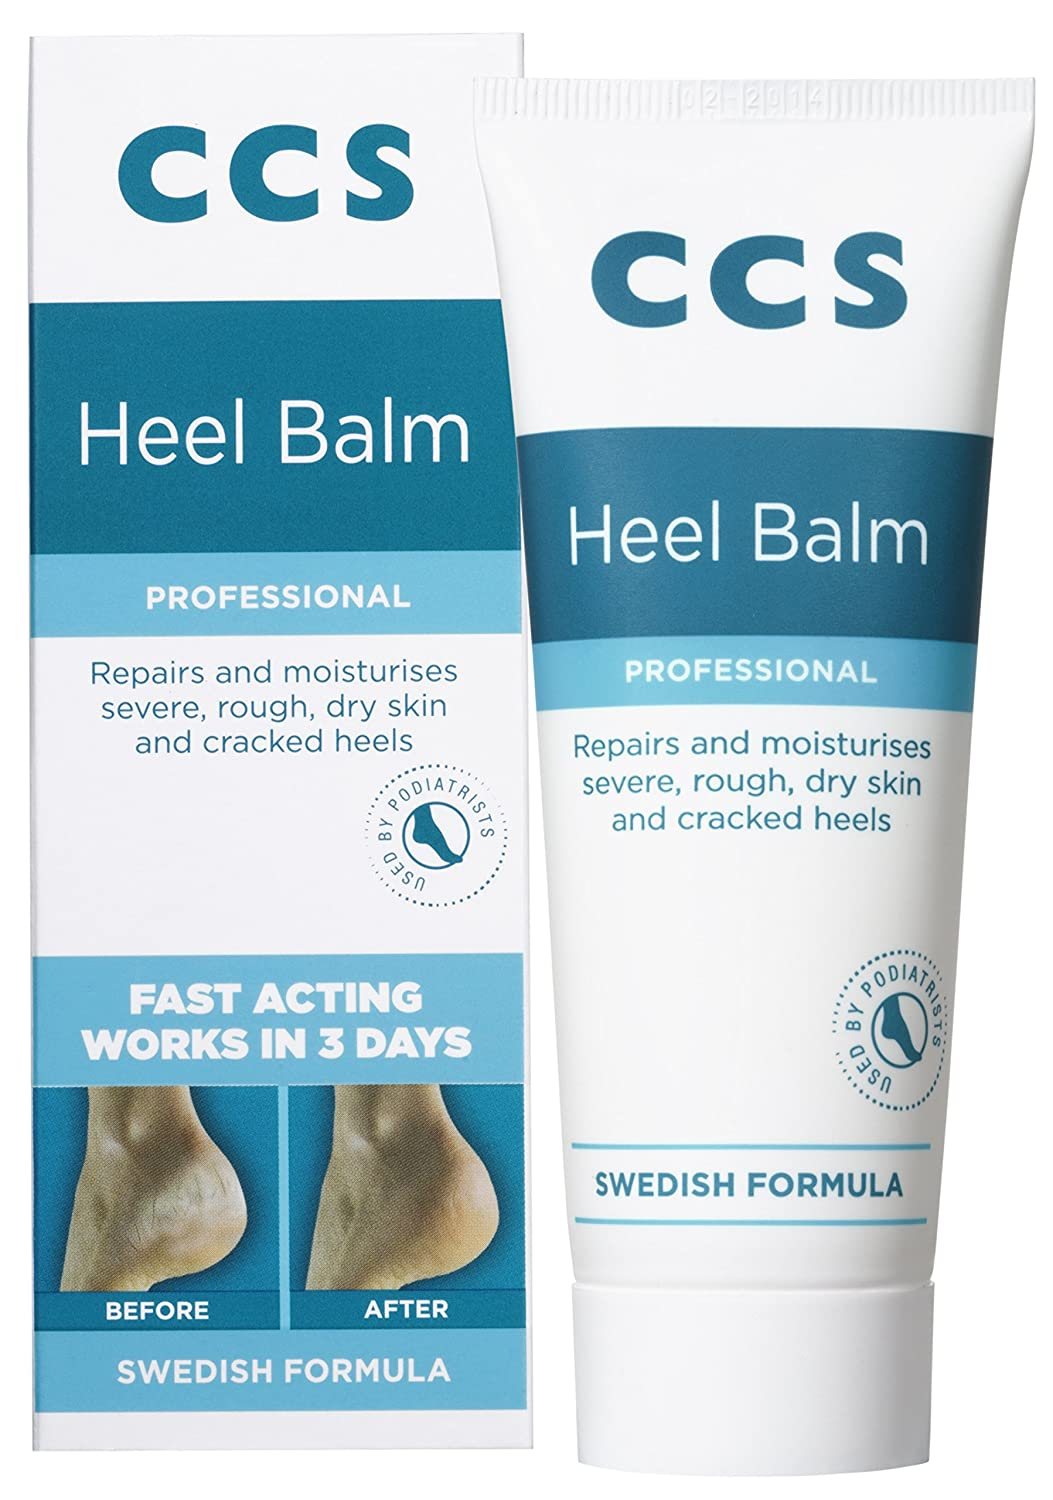 CCS Swedish Foot Heel Balm For Rough Dry And Cracked Heels - 75g 7315980167289